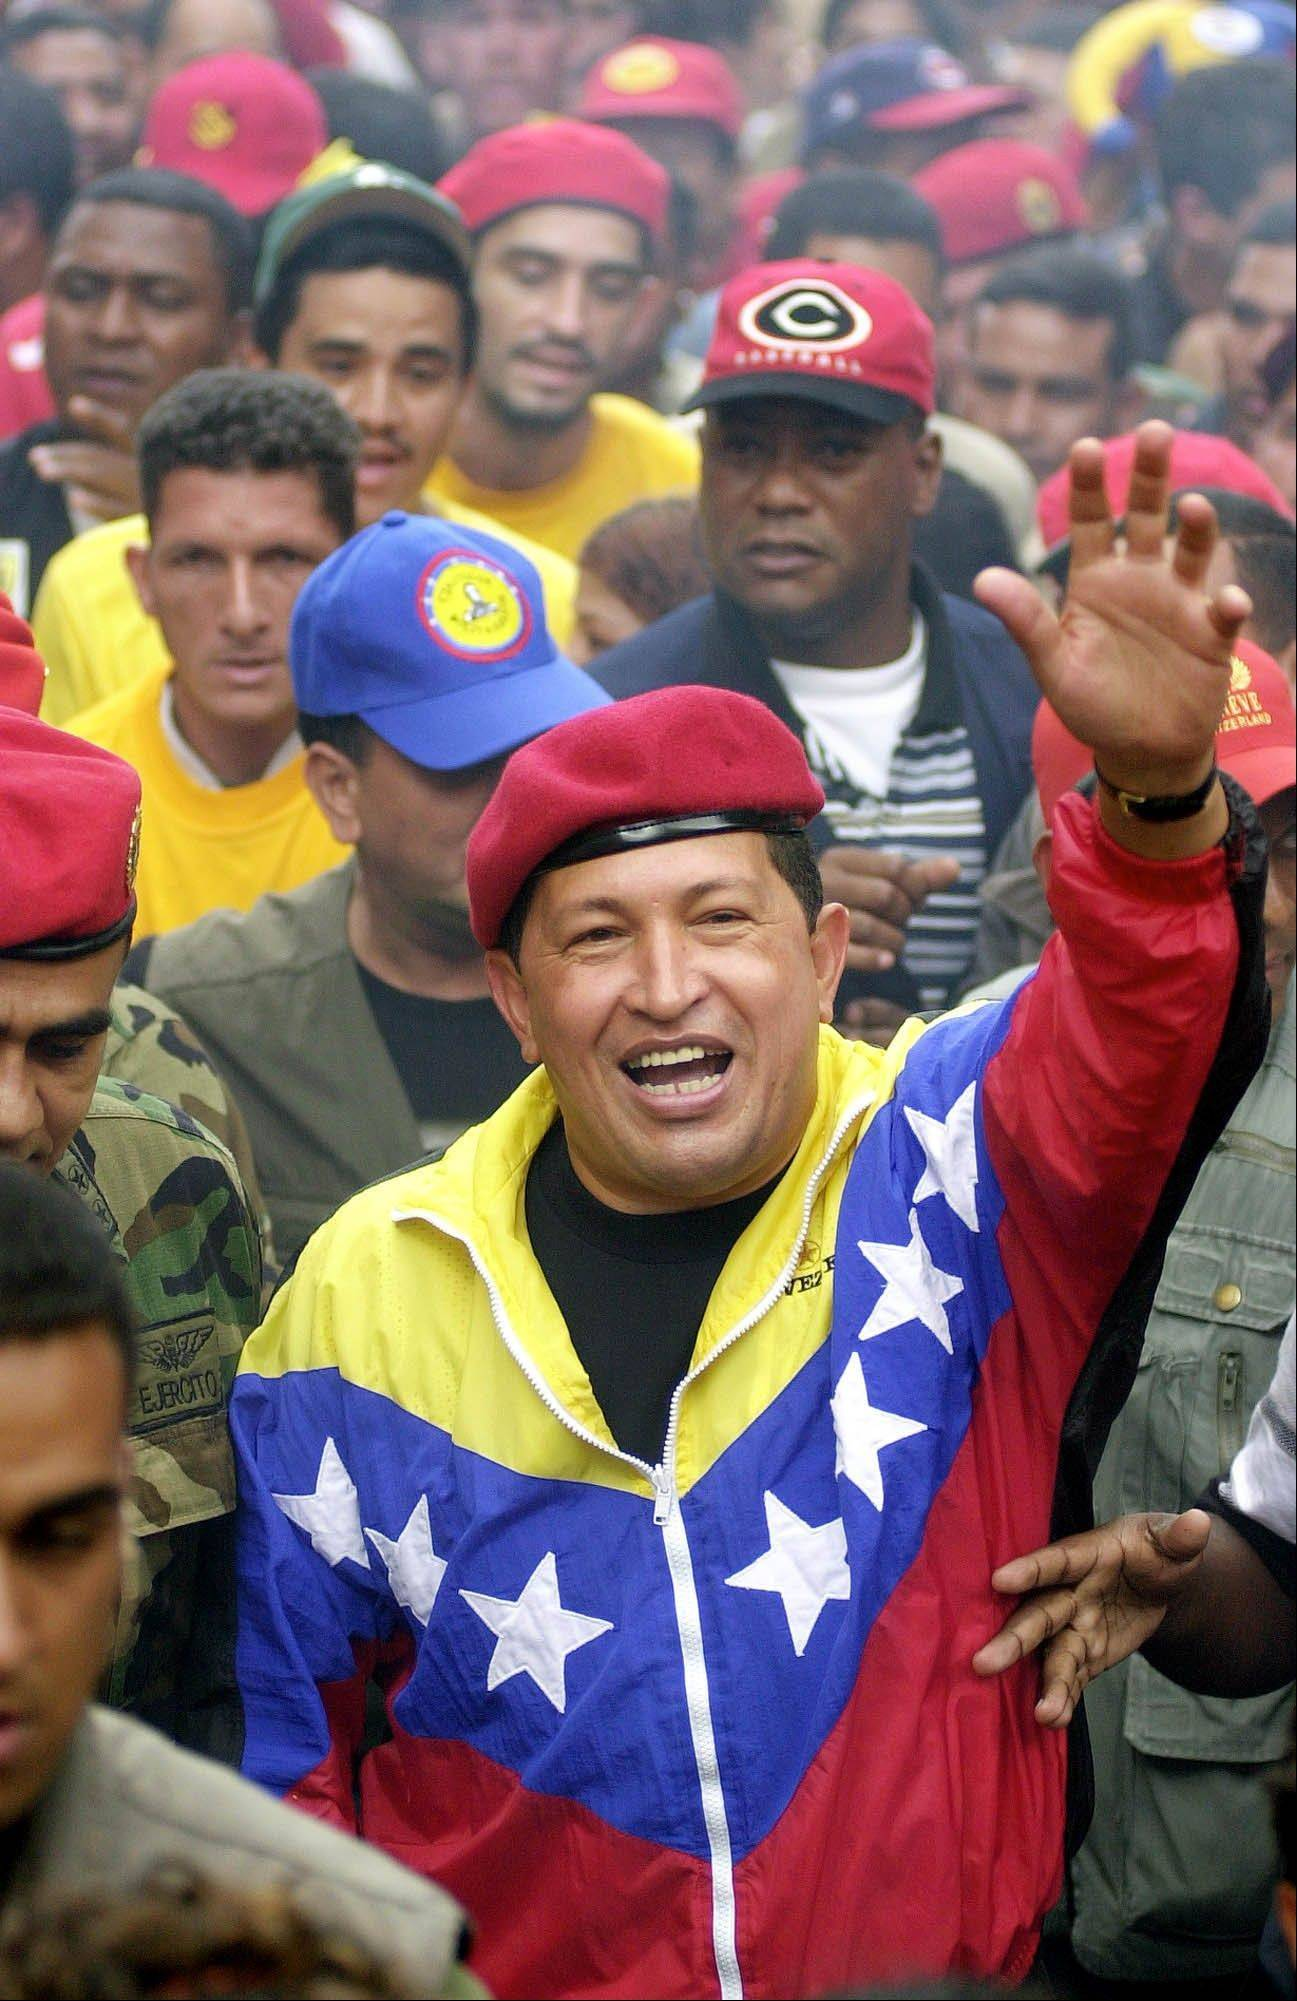 In this Jan. 23, 2002 file photo, Venezuela's President Hugo Chavez waves to supporters during a government march commemorating the anniversary of Venezuelan democracy in Caracas, Venezuela. Chavez died March 5, 2013 at age 58.